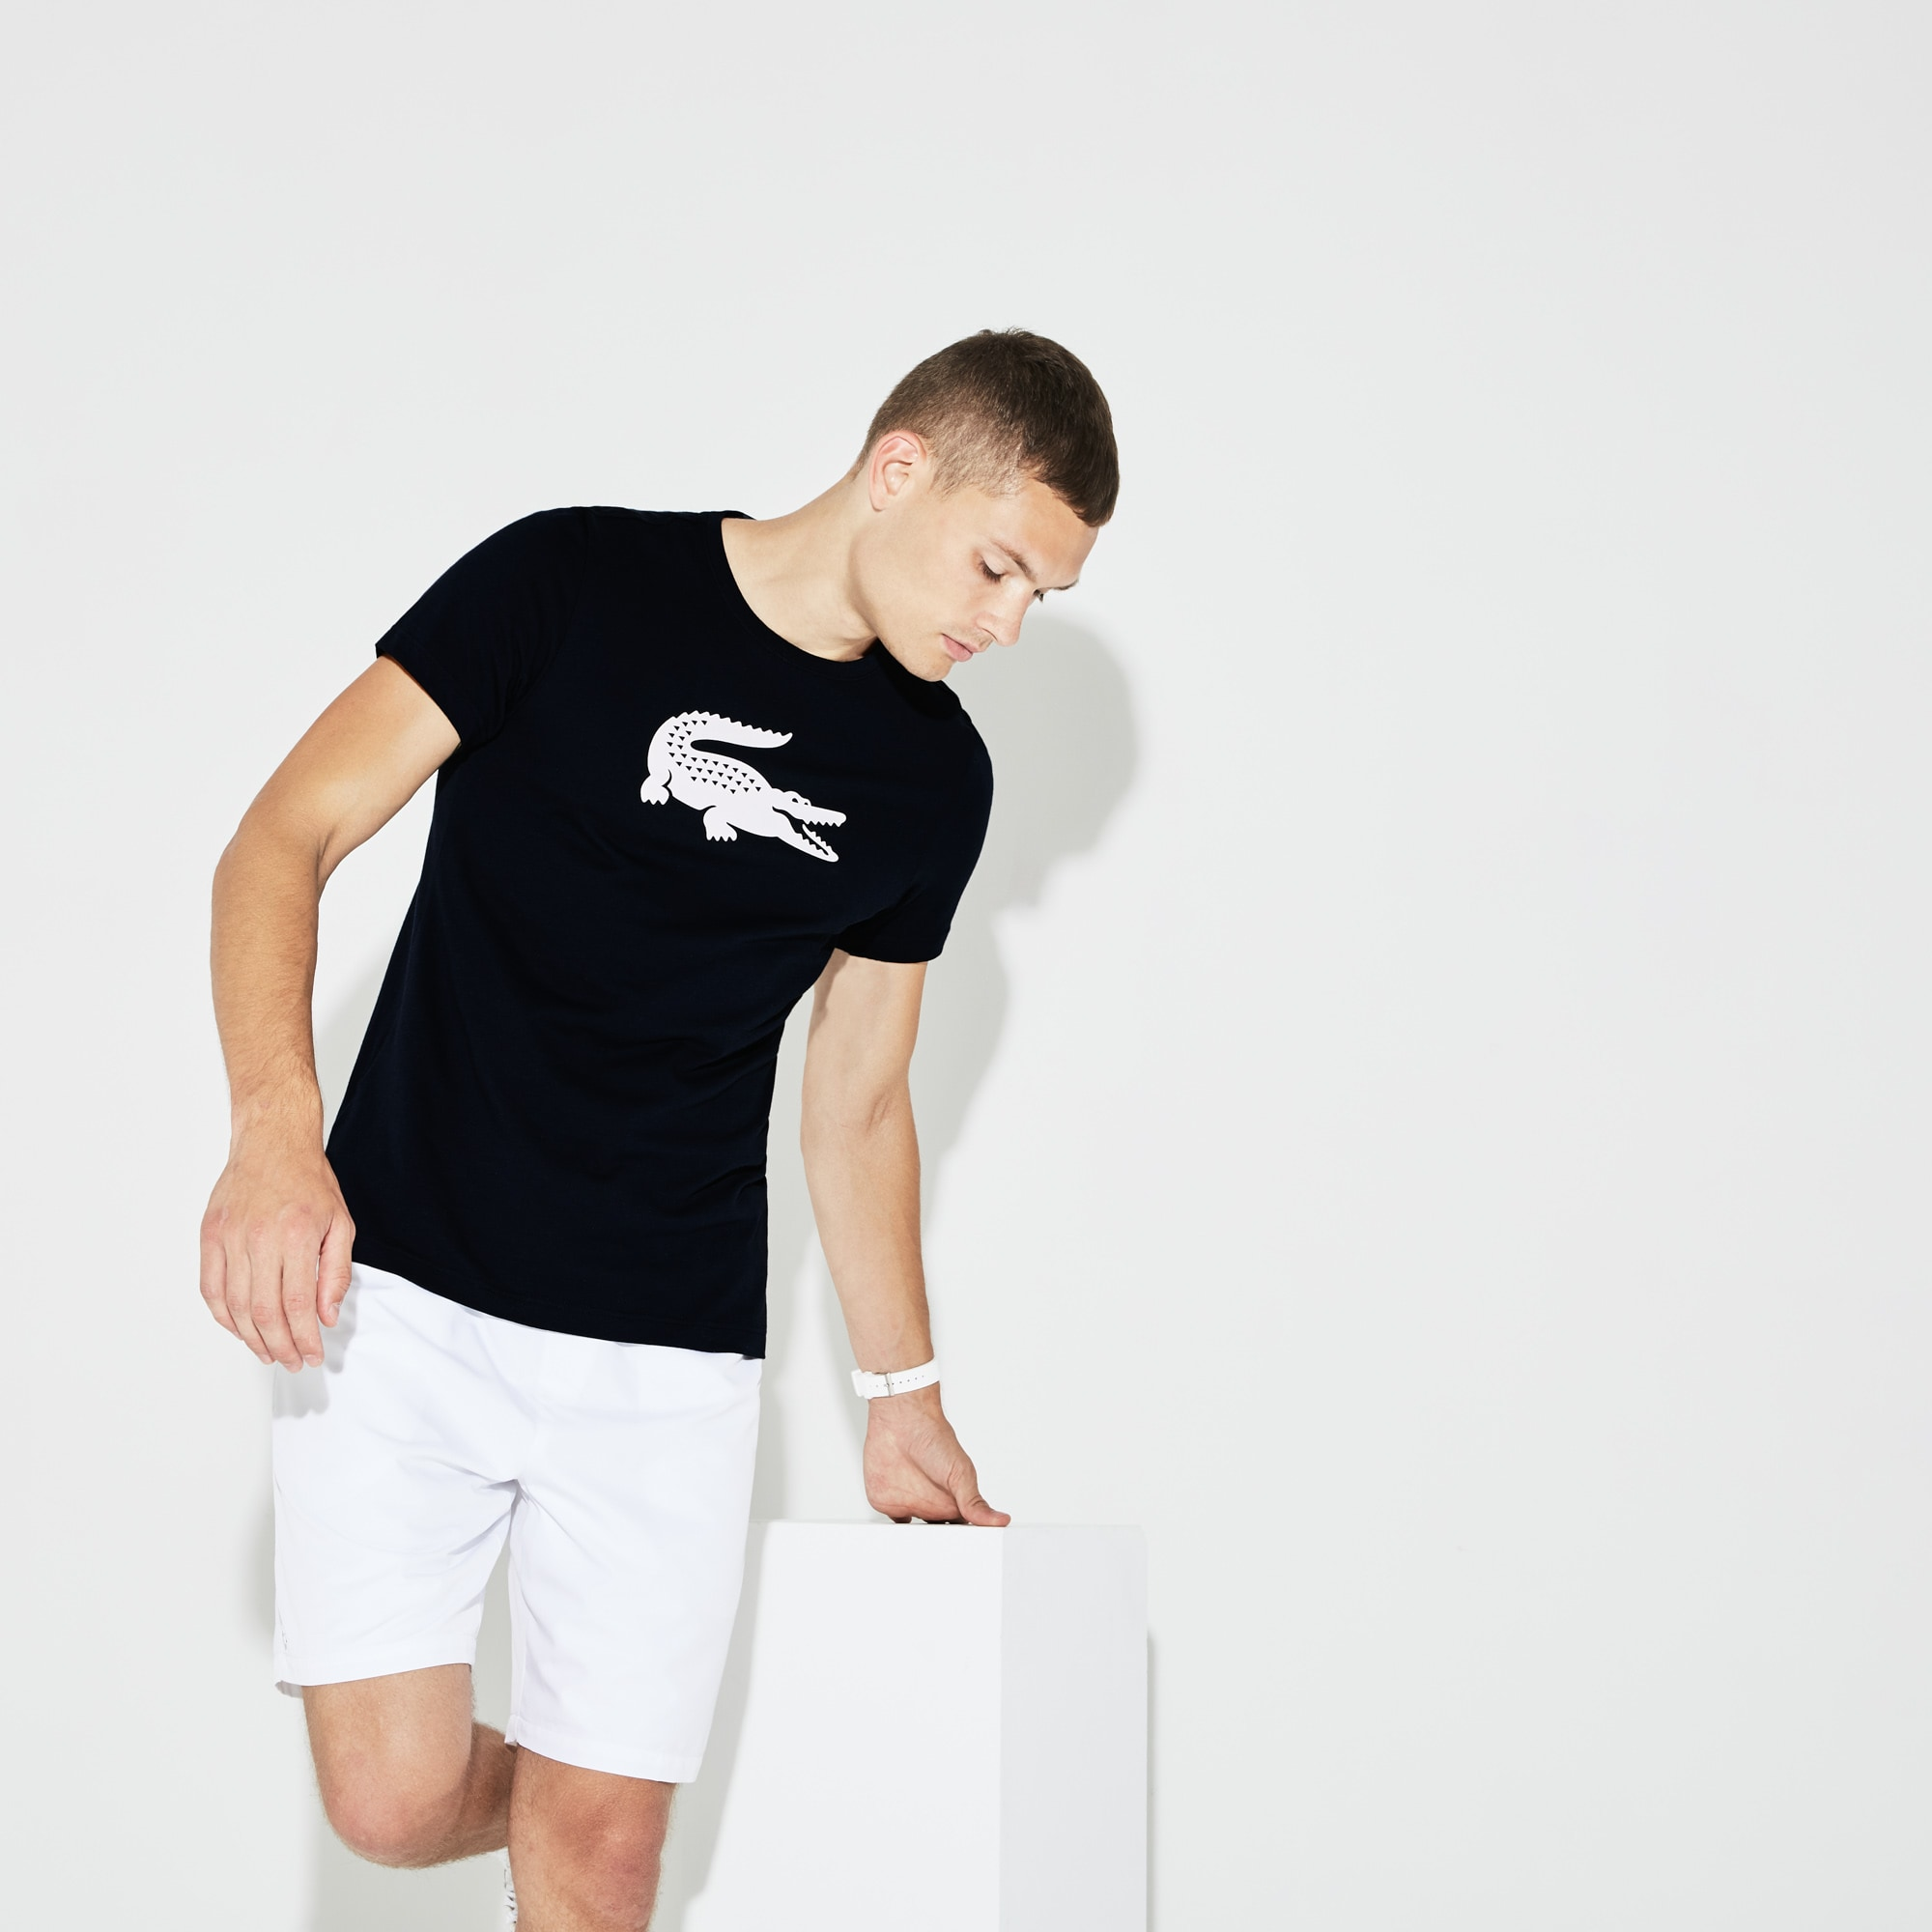 Men's SPORT Oversize Croc Tennis T-Shirt